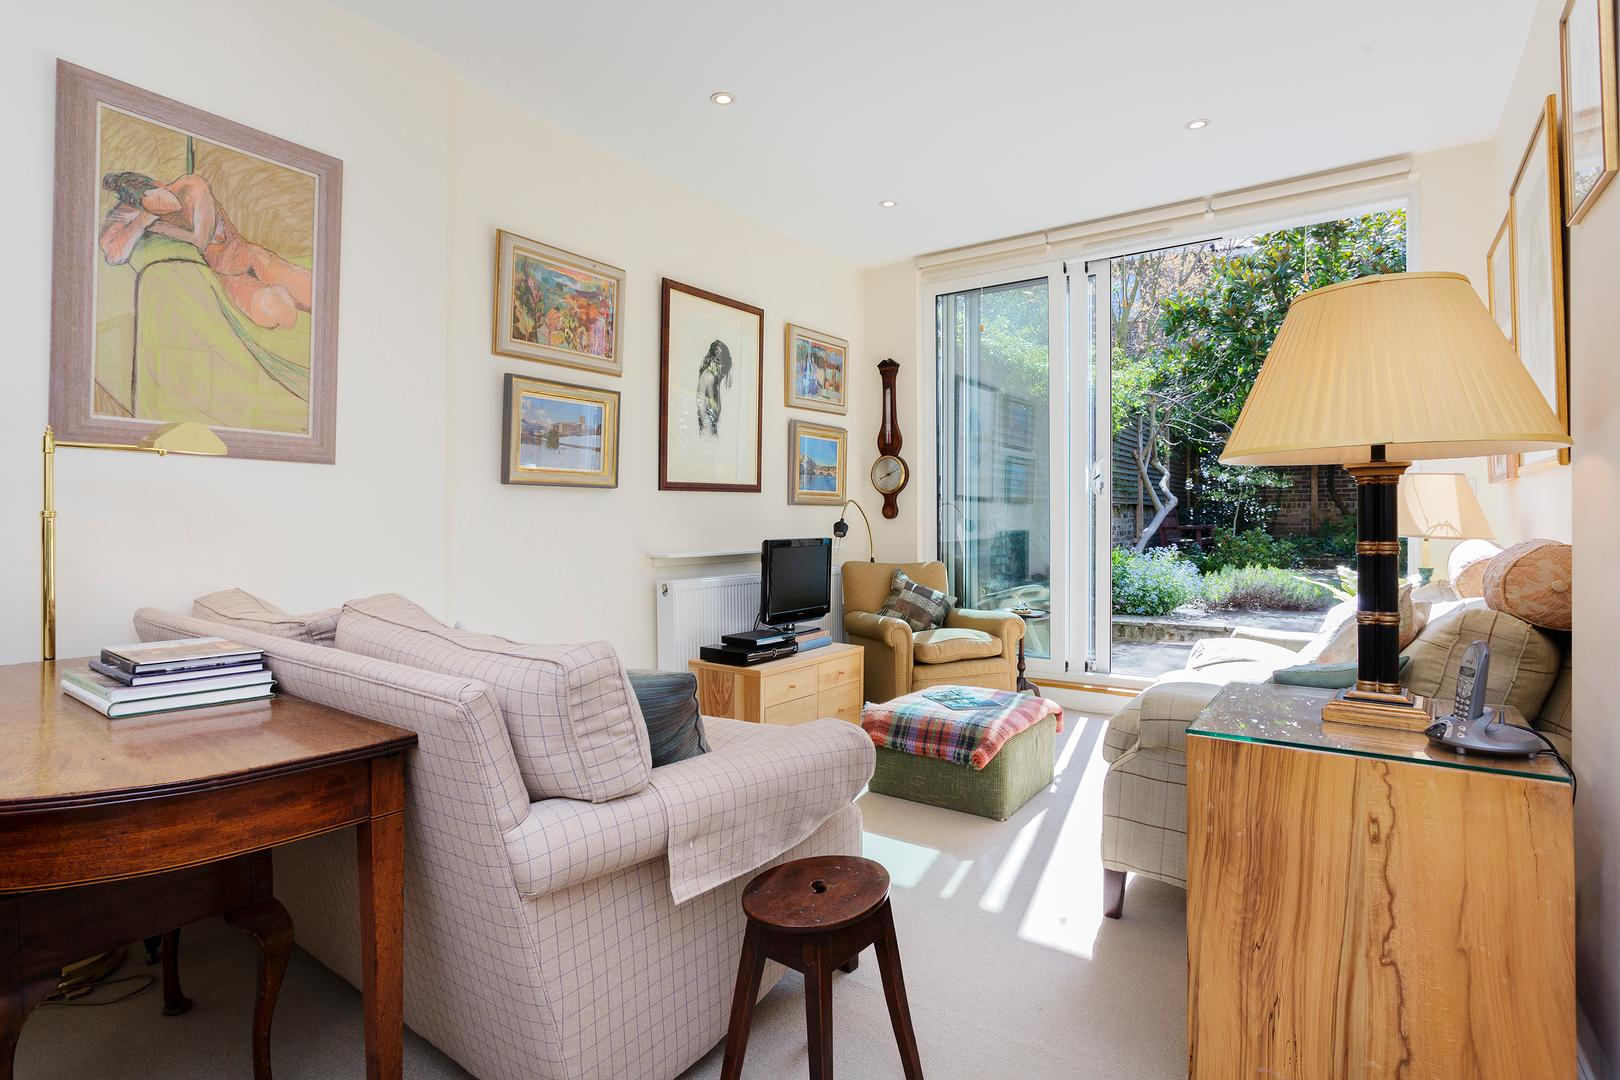 Property Image 1 - Spacious Upscale Fulham Apartment with Garden